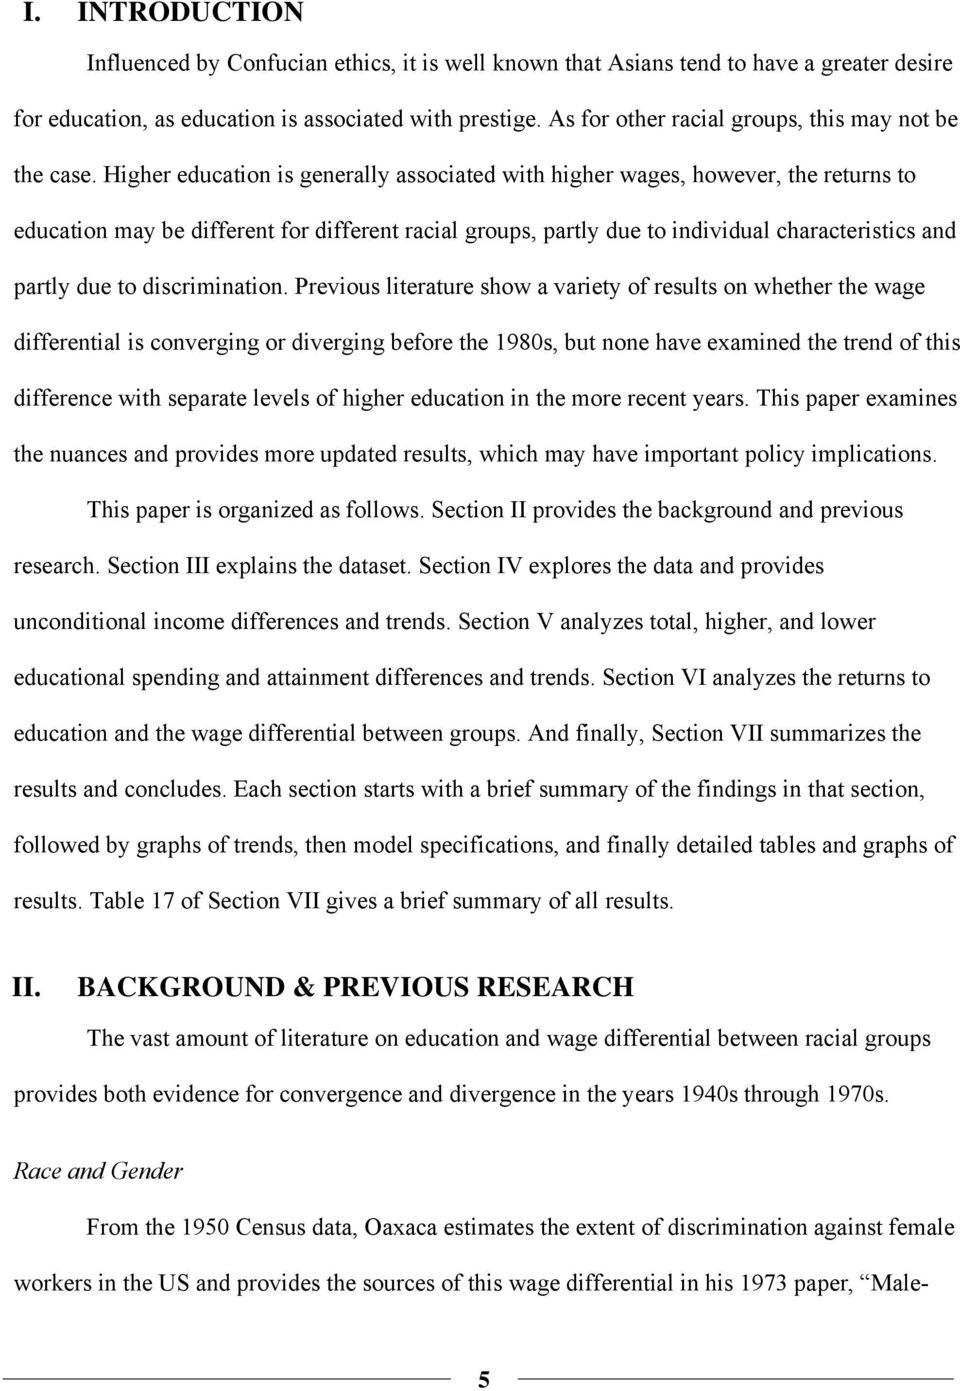 Higher education is generally associated with higher wages, however, the returns to education may be different for different racial groups, partly due to individual characteristics and partly due to